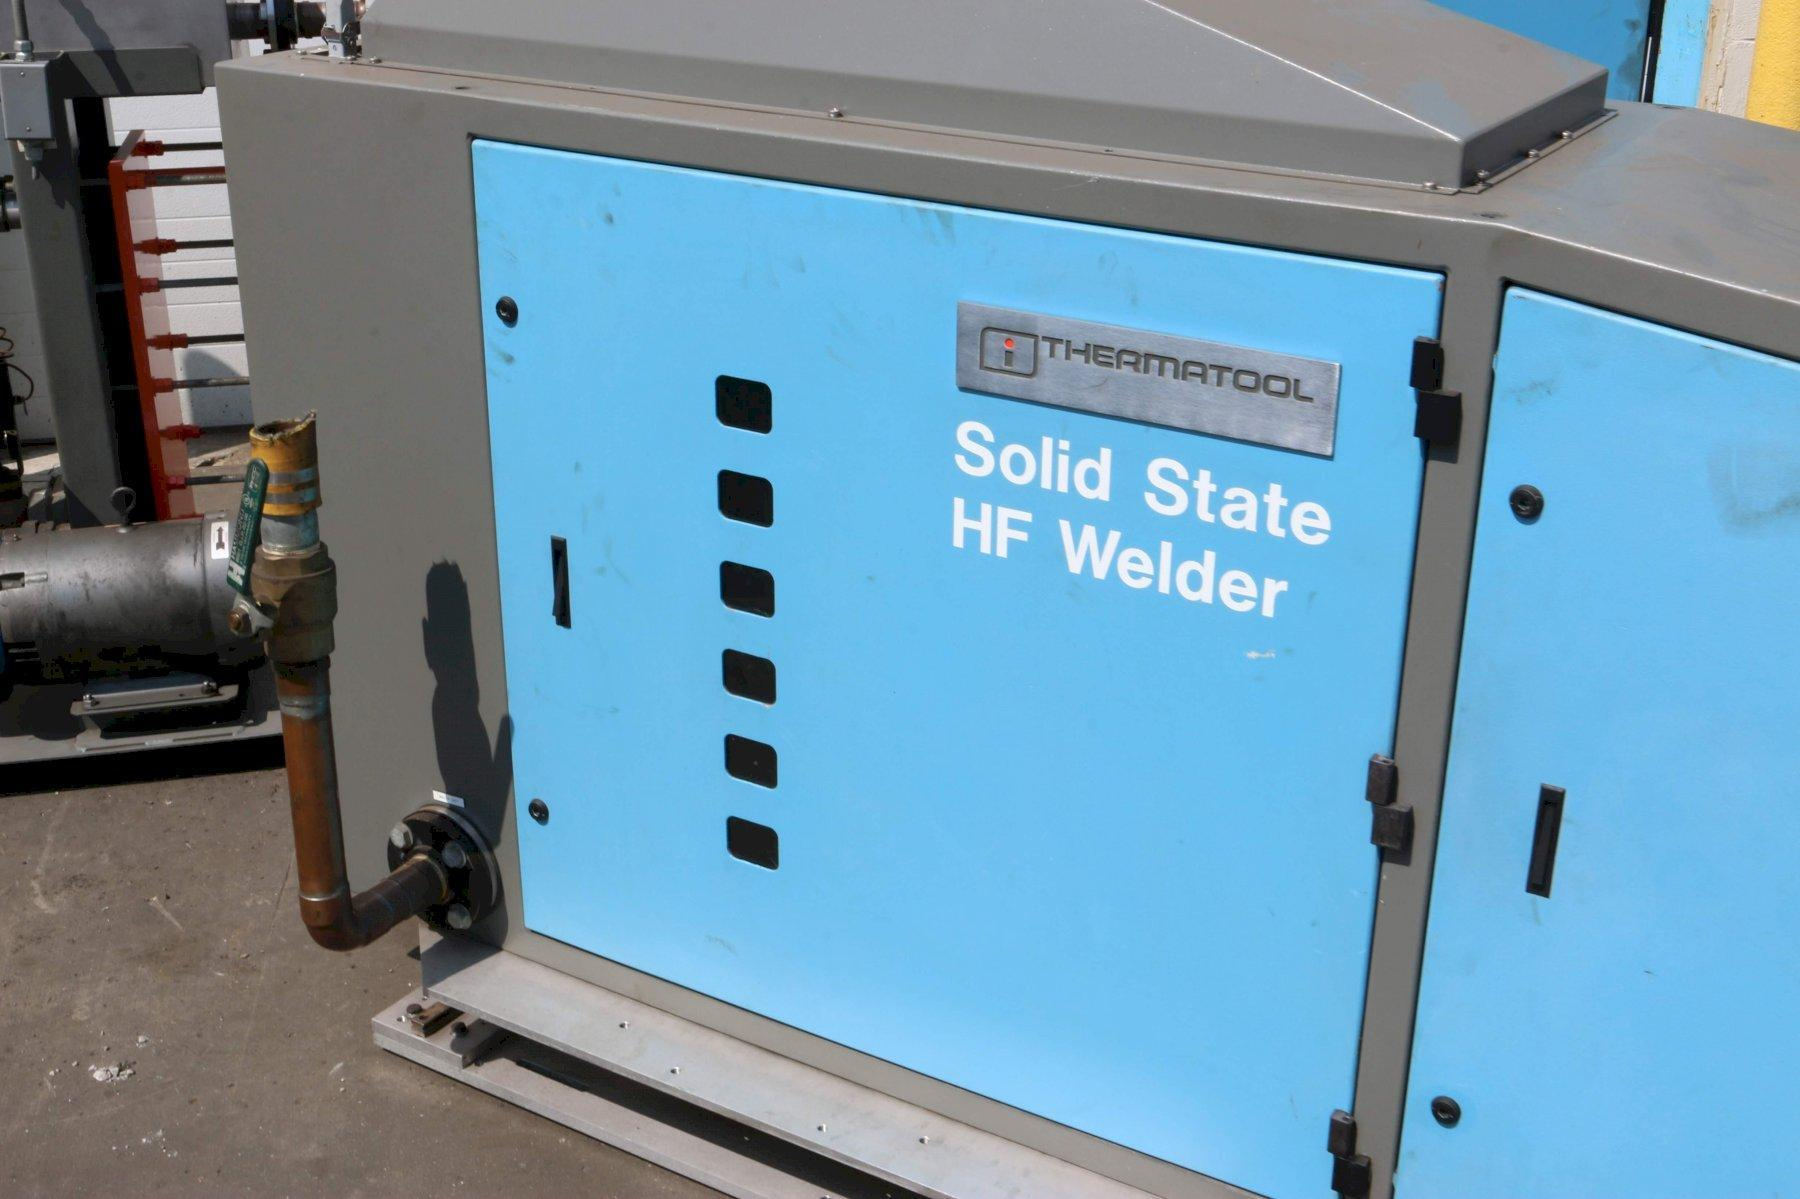 100 KW THERMATOOL HI FRQUENCY CF-1-4-1006460 SOLID STATE WELDER: STOCK